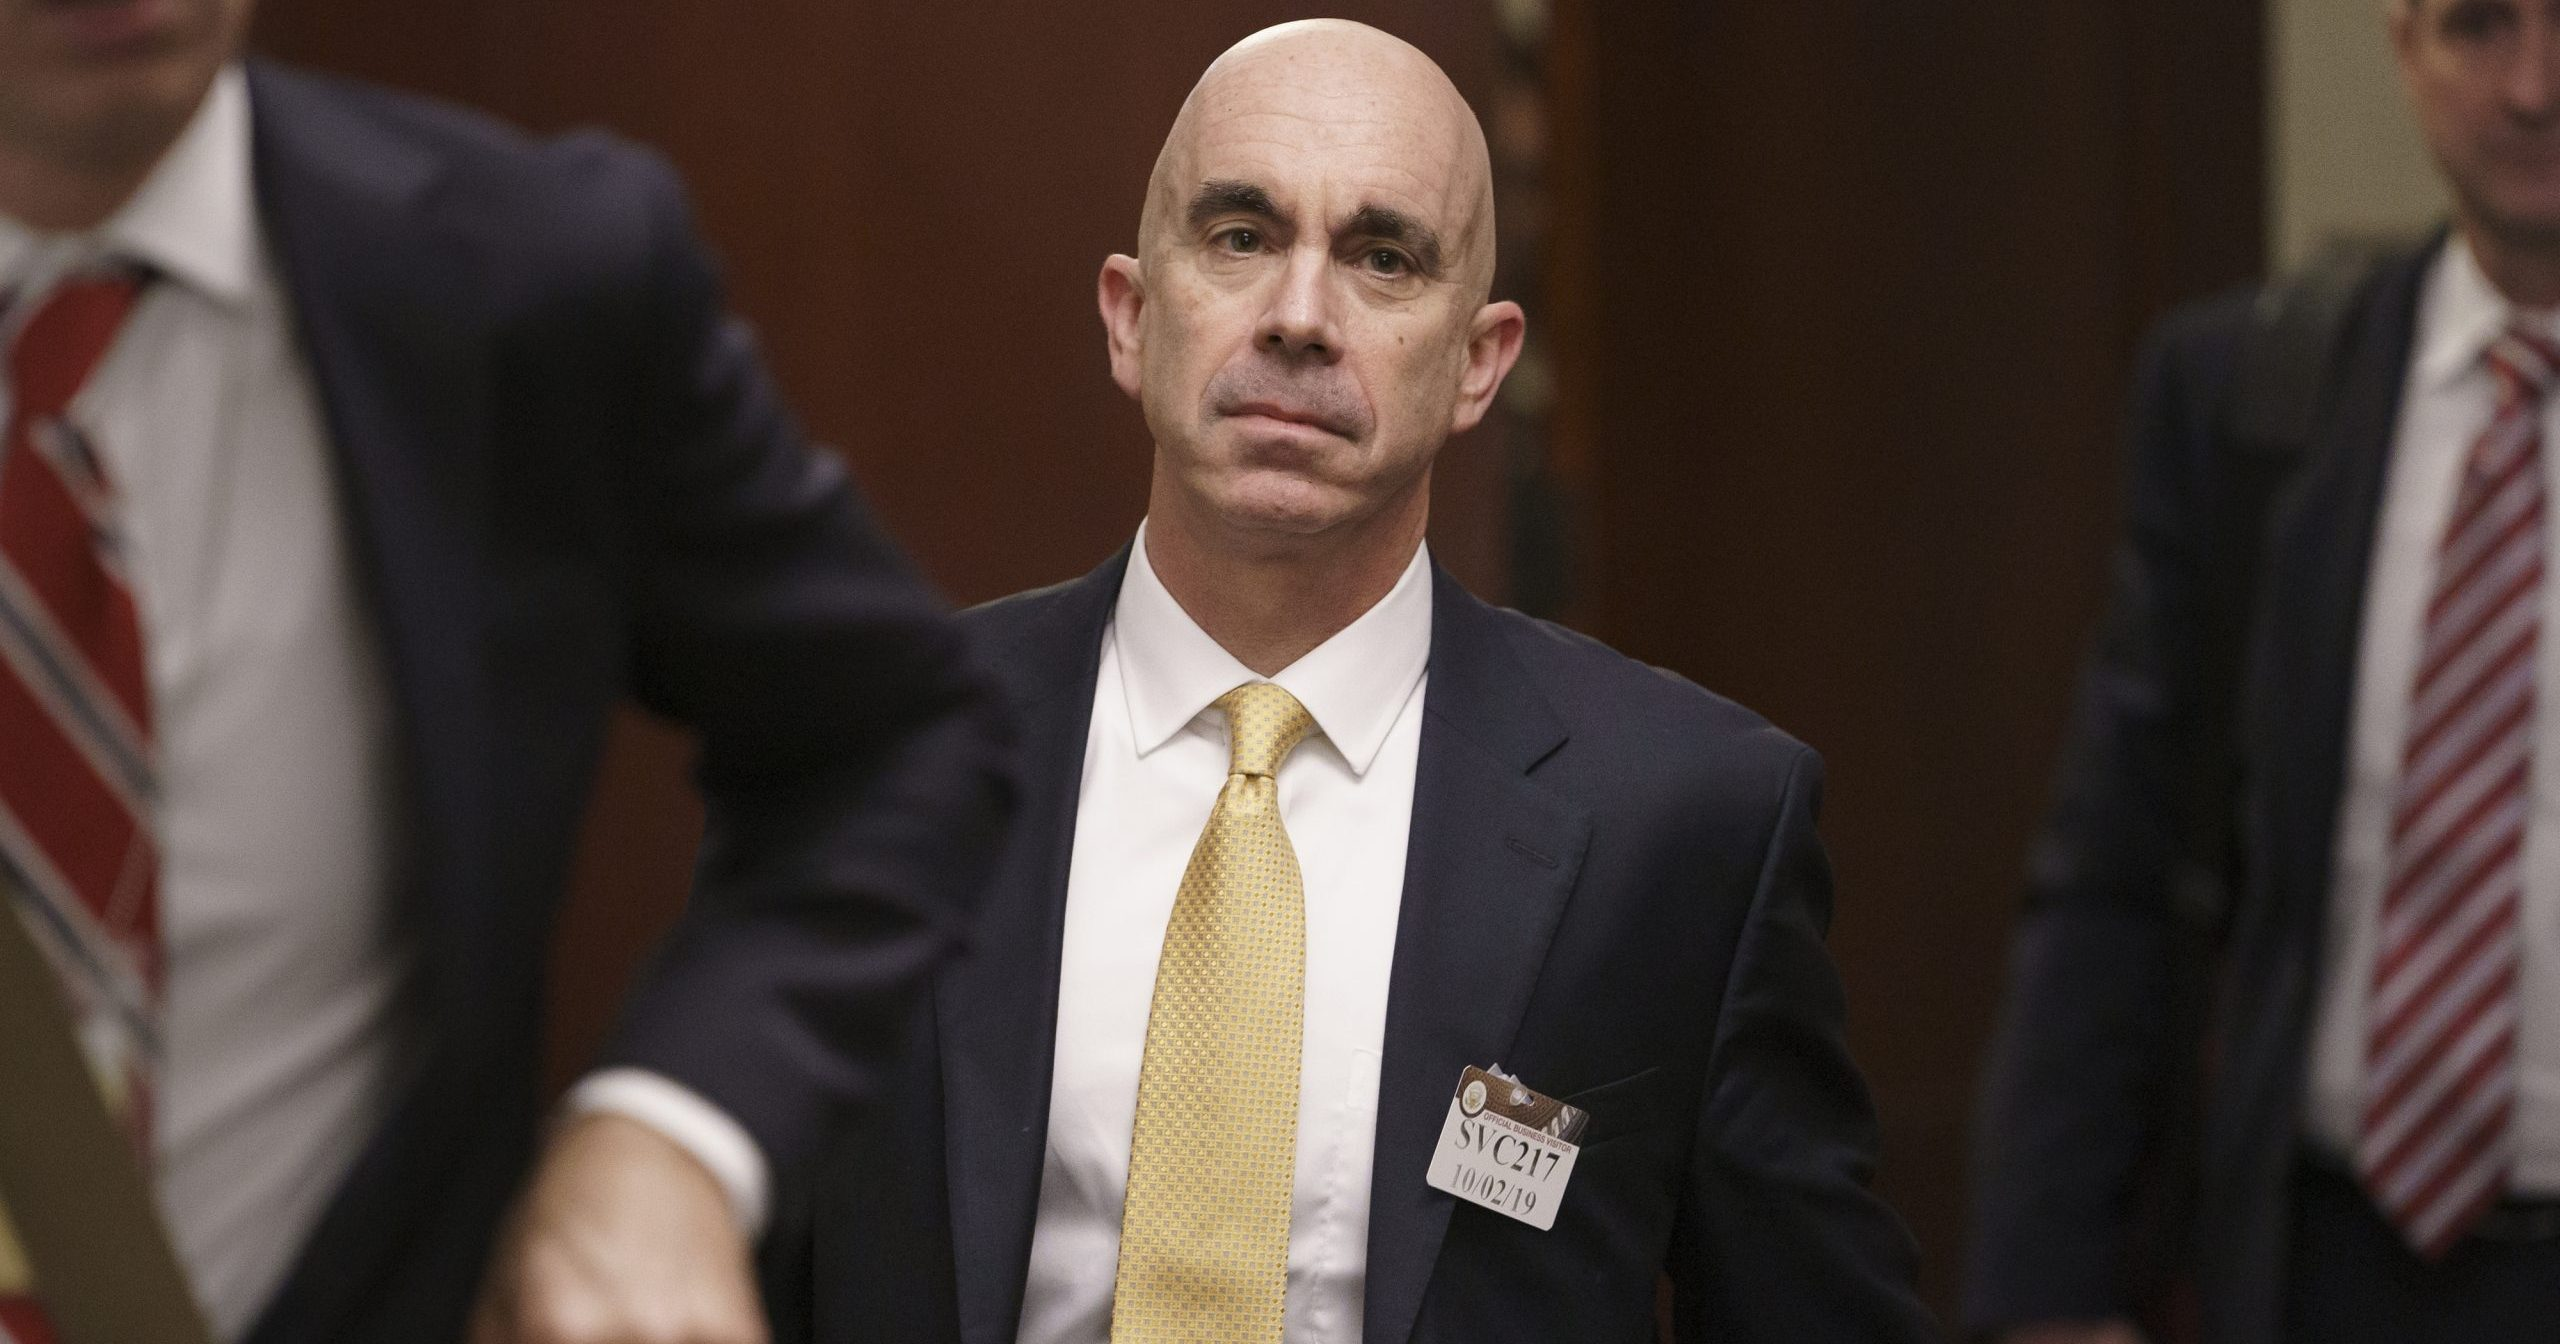 In this Oct. 2, 2019, file photo, State Department Inspector General Steve Linick leaves a meeting in a secure area at the Capitol in Washington. A senior department official said President Donald Trump removed Linick from his job as State Department's inspector general on May 15, 2020, but gave no reason for his ouster.